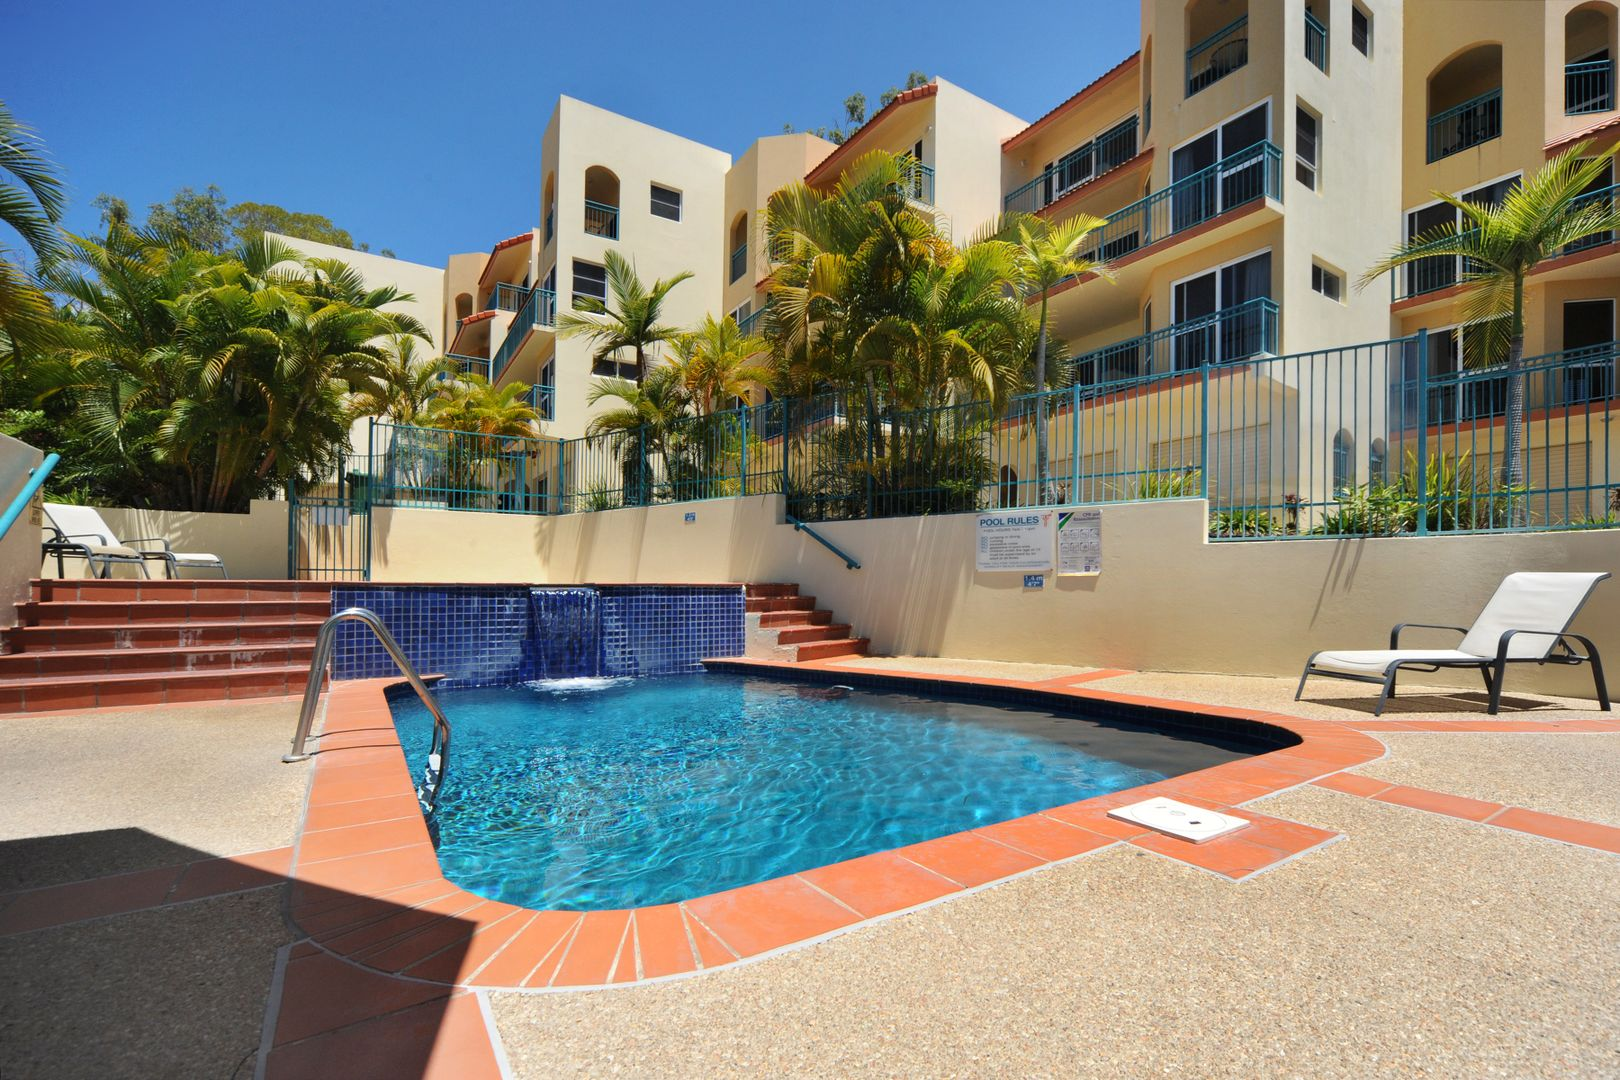 8/115 Shingley Drive, Airlie Beach QLD 4802, Image 0